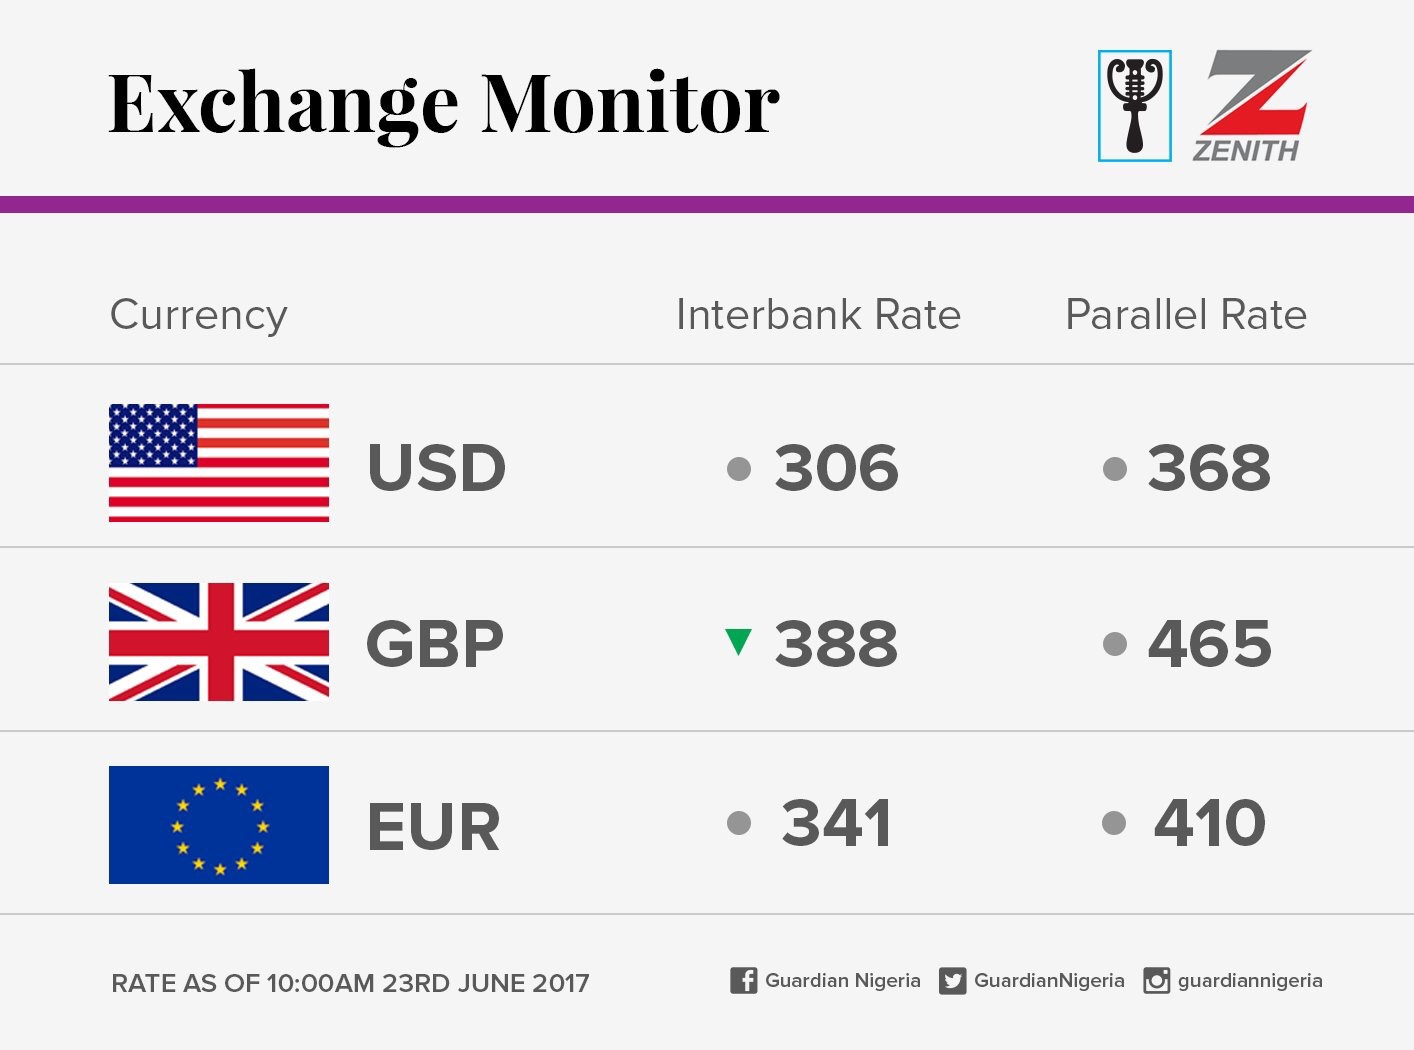 Exchange Rate For 23rd June 2017